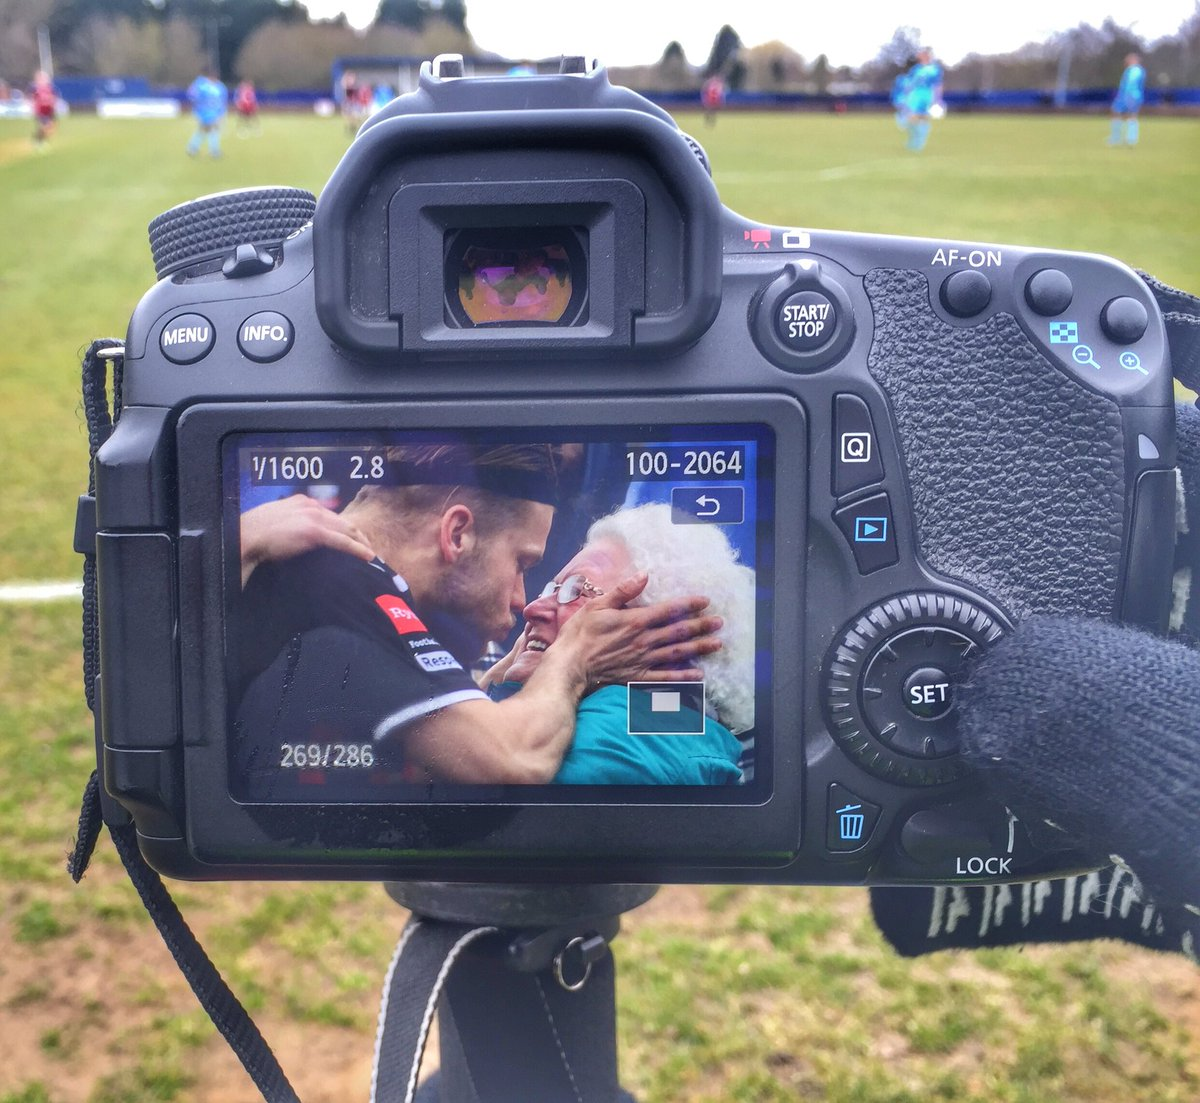 The genius @Gingeraction caught @Hmuggeridge getting a bit too frisky with Ethel in celebrating his goal @Lewes_cfc https://t.co/IiJRe4QURD